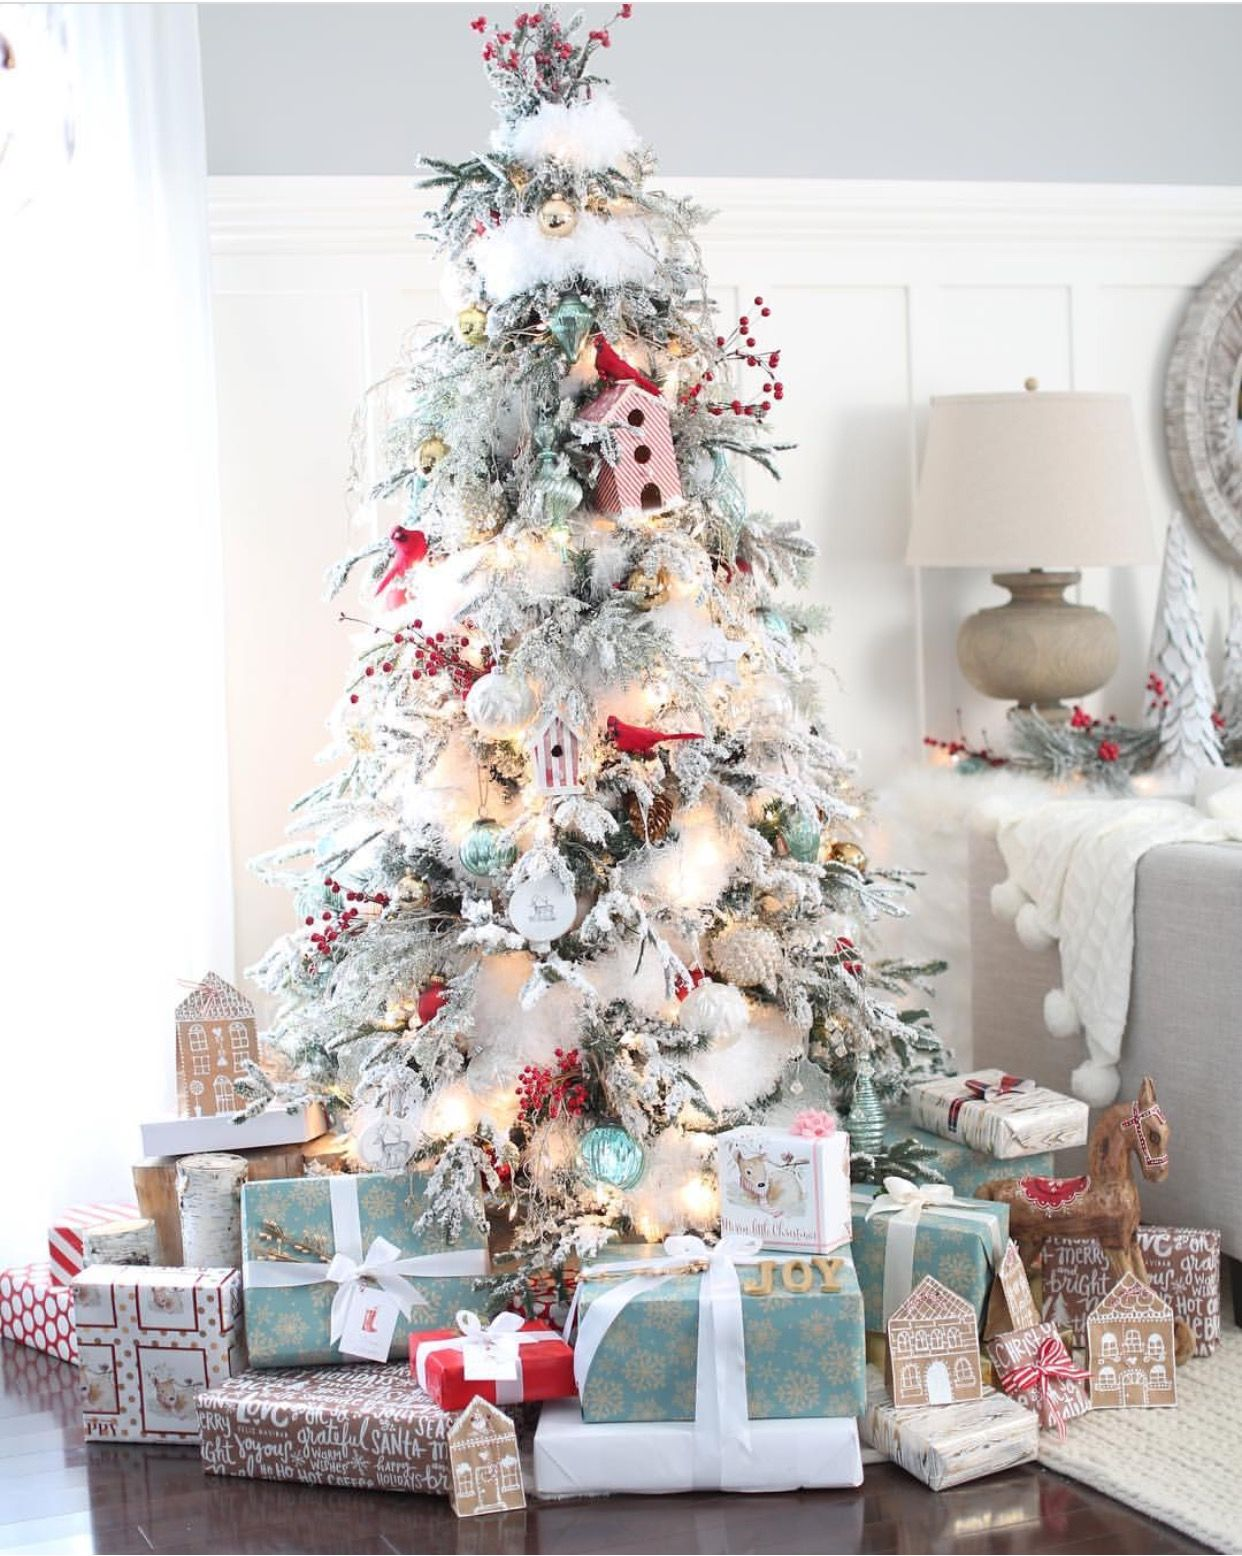 Pin by Brandy Nichole Norton on Home Decor | Pinterest | Christmas ...